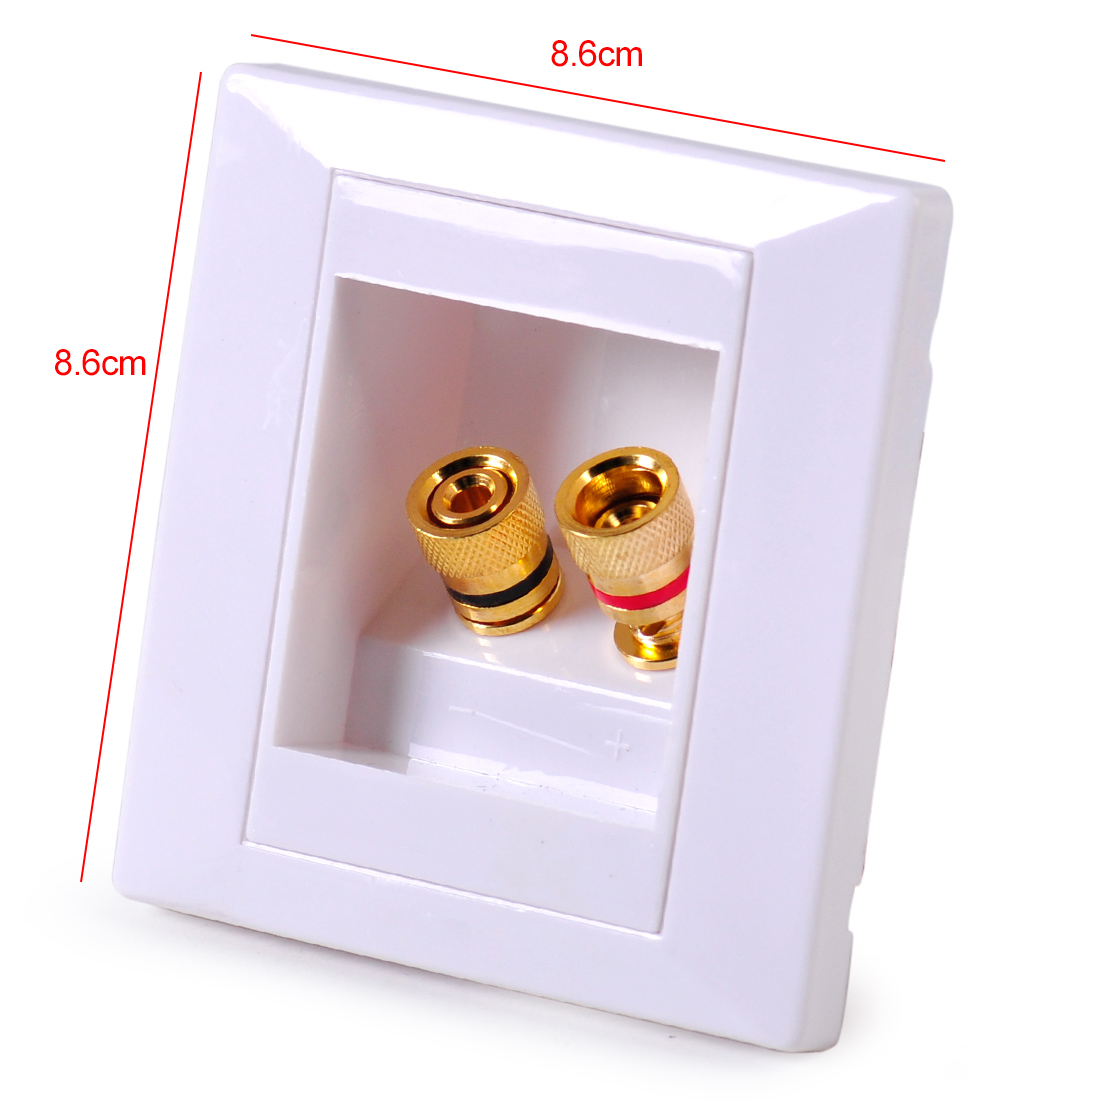 hight resolution of details about white audio speaker jack wall plate panel 2 binding post for banana plug 86x86mm